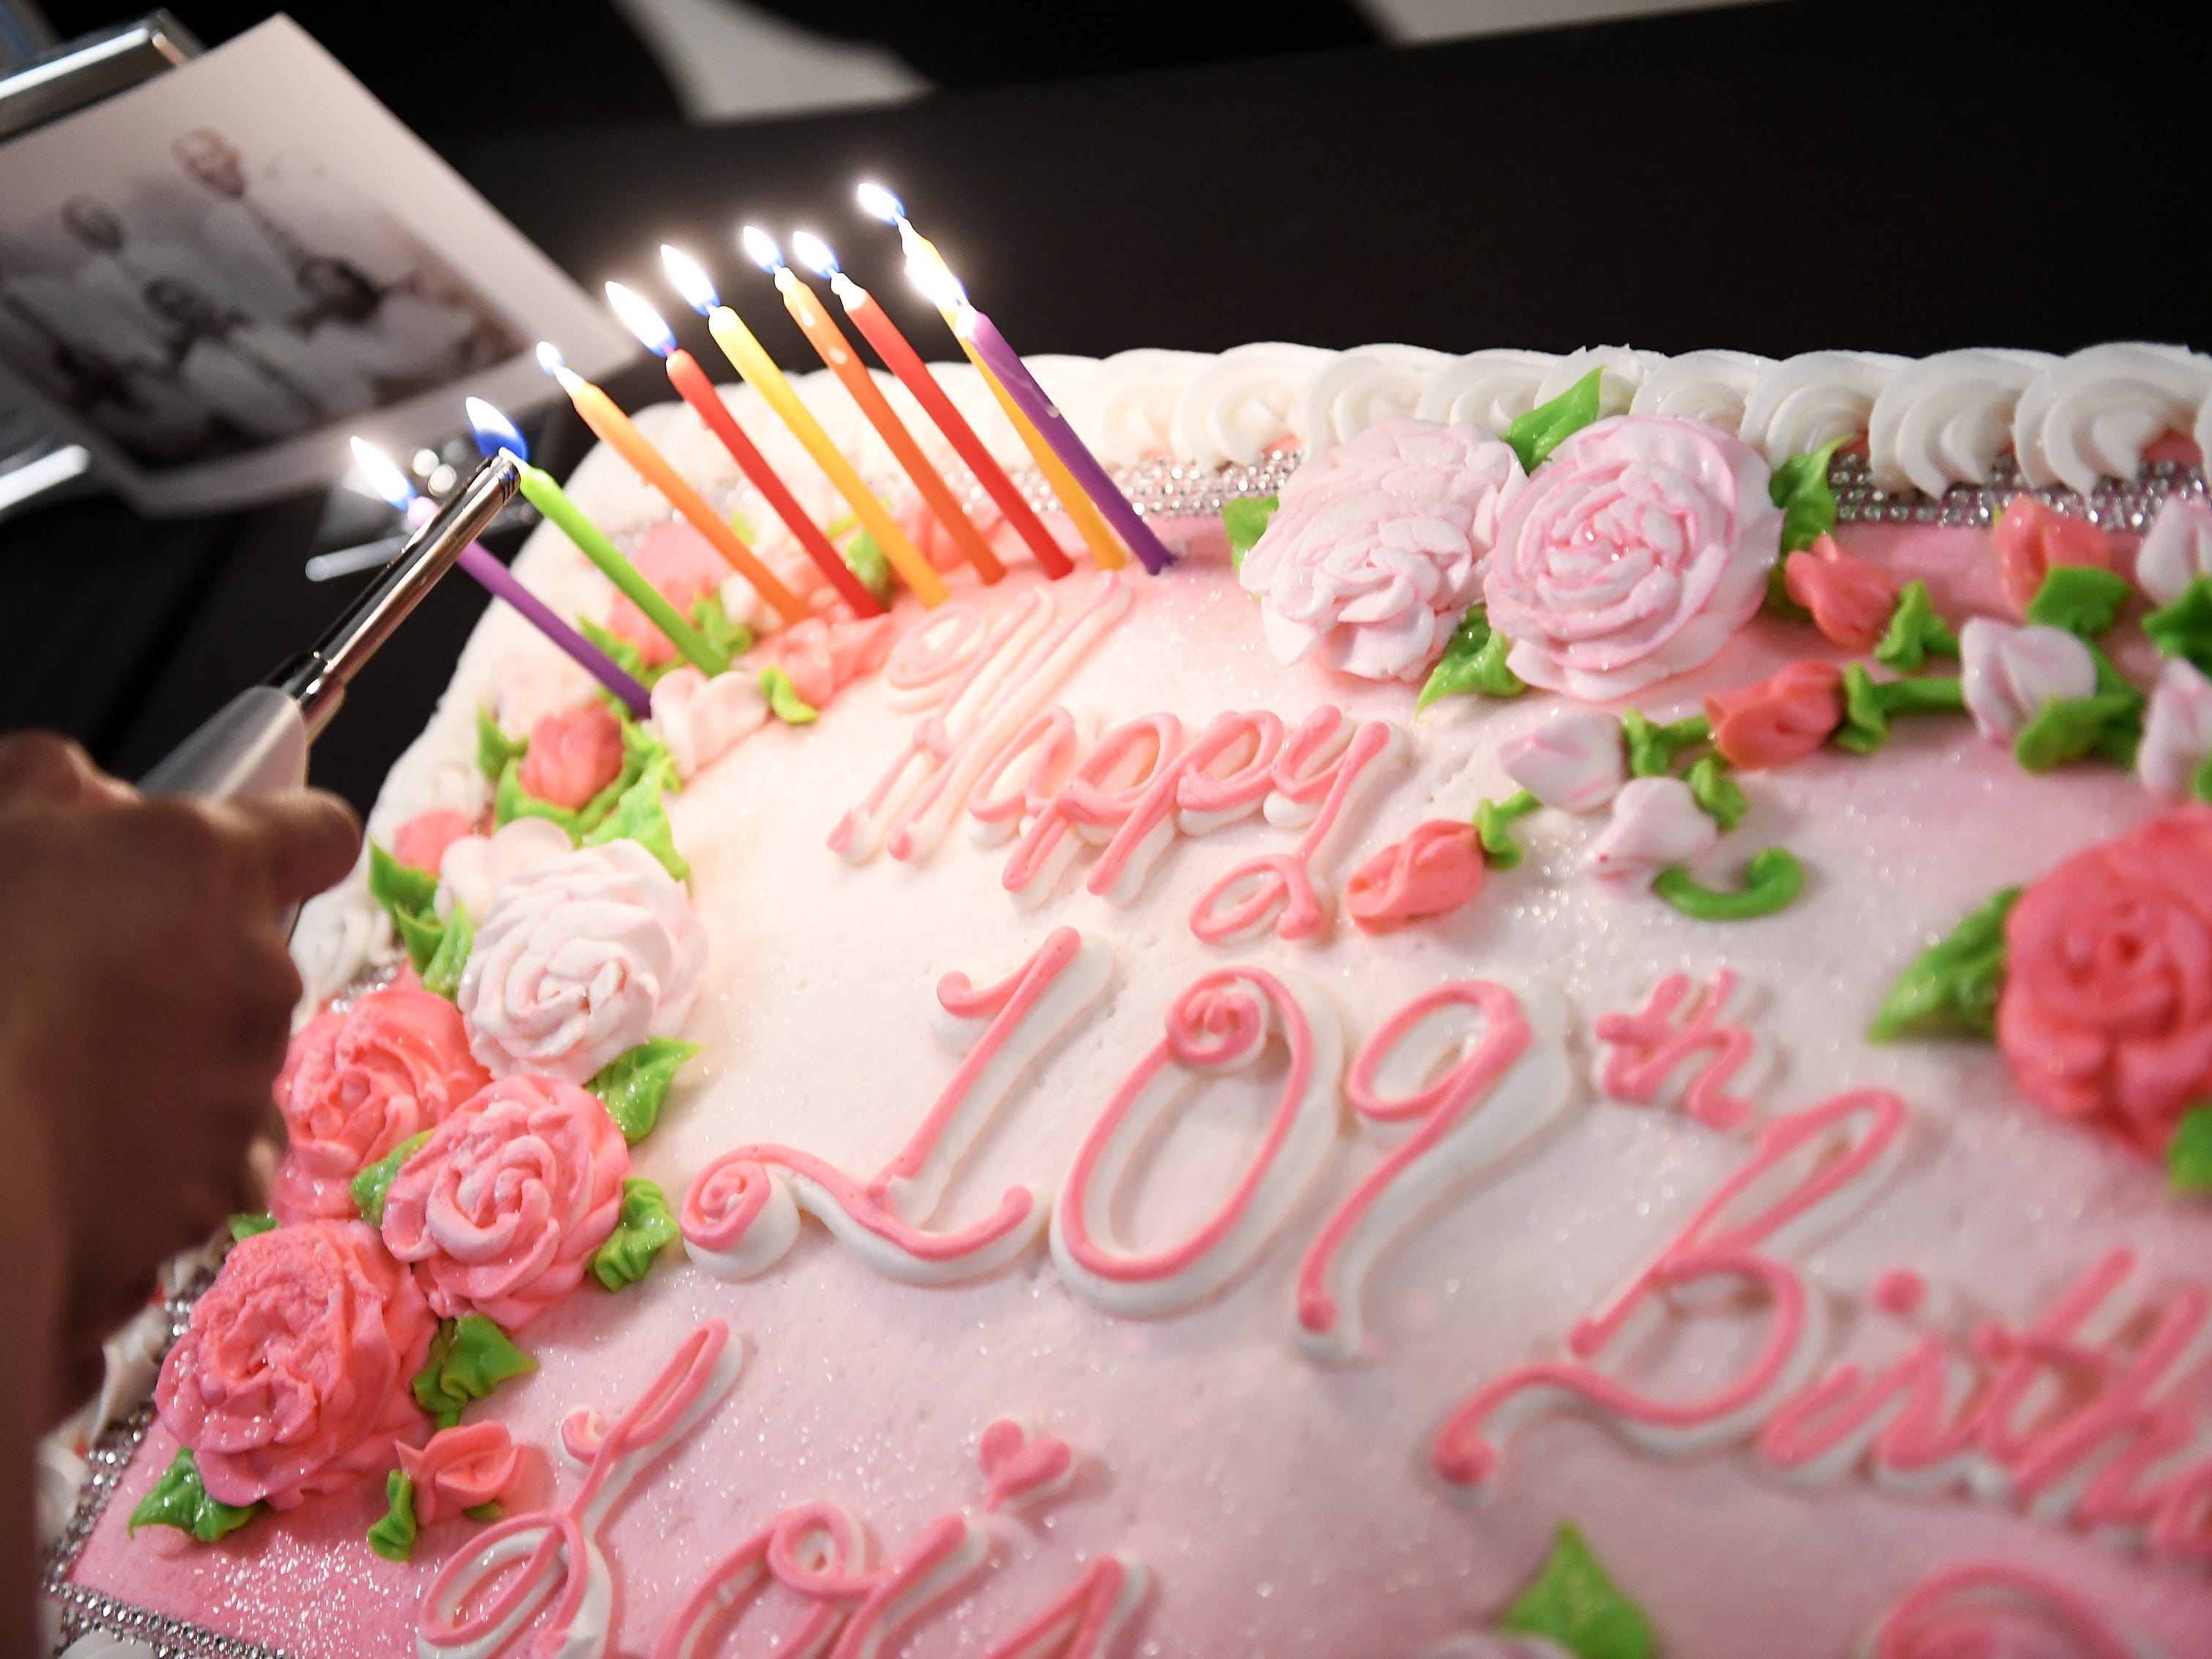 Nine candles are lit on the birthday cake for Lois Holden who just turned 109.